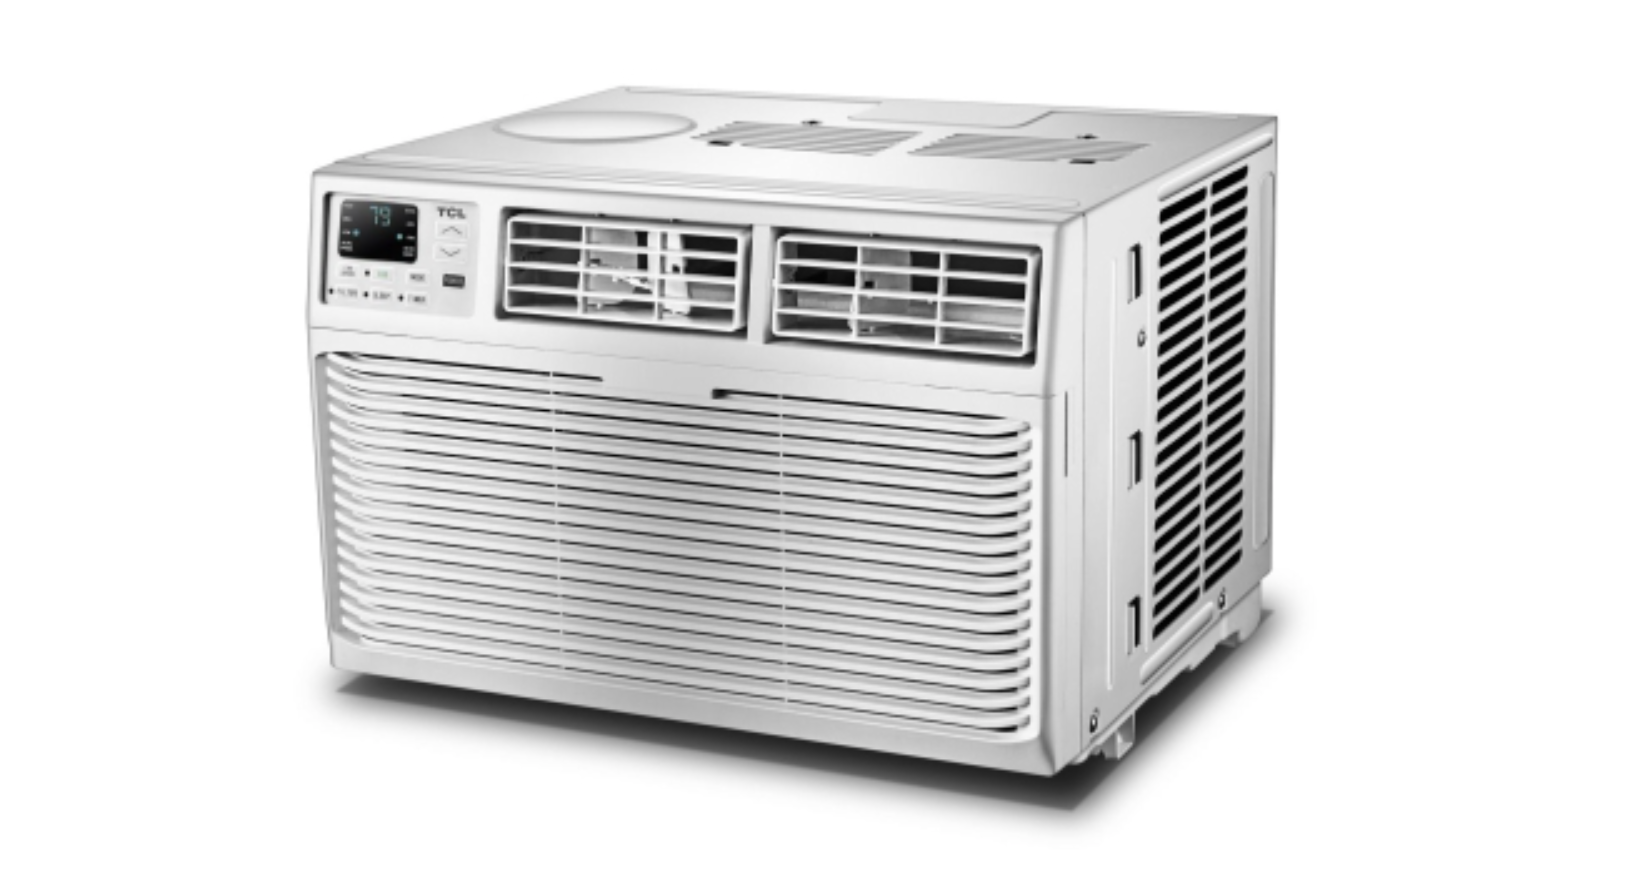 image of the TCL Window Air Conditioner